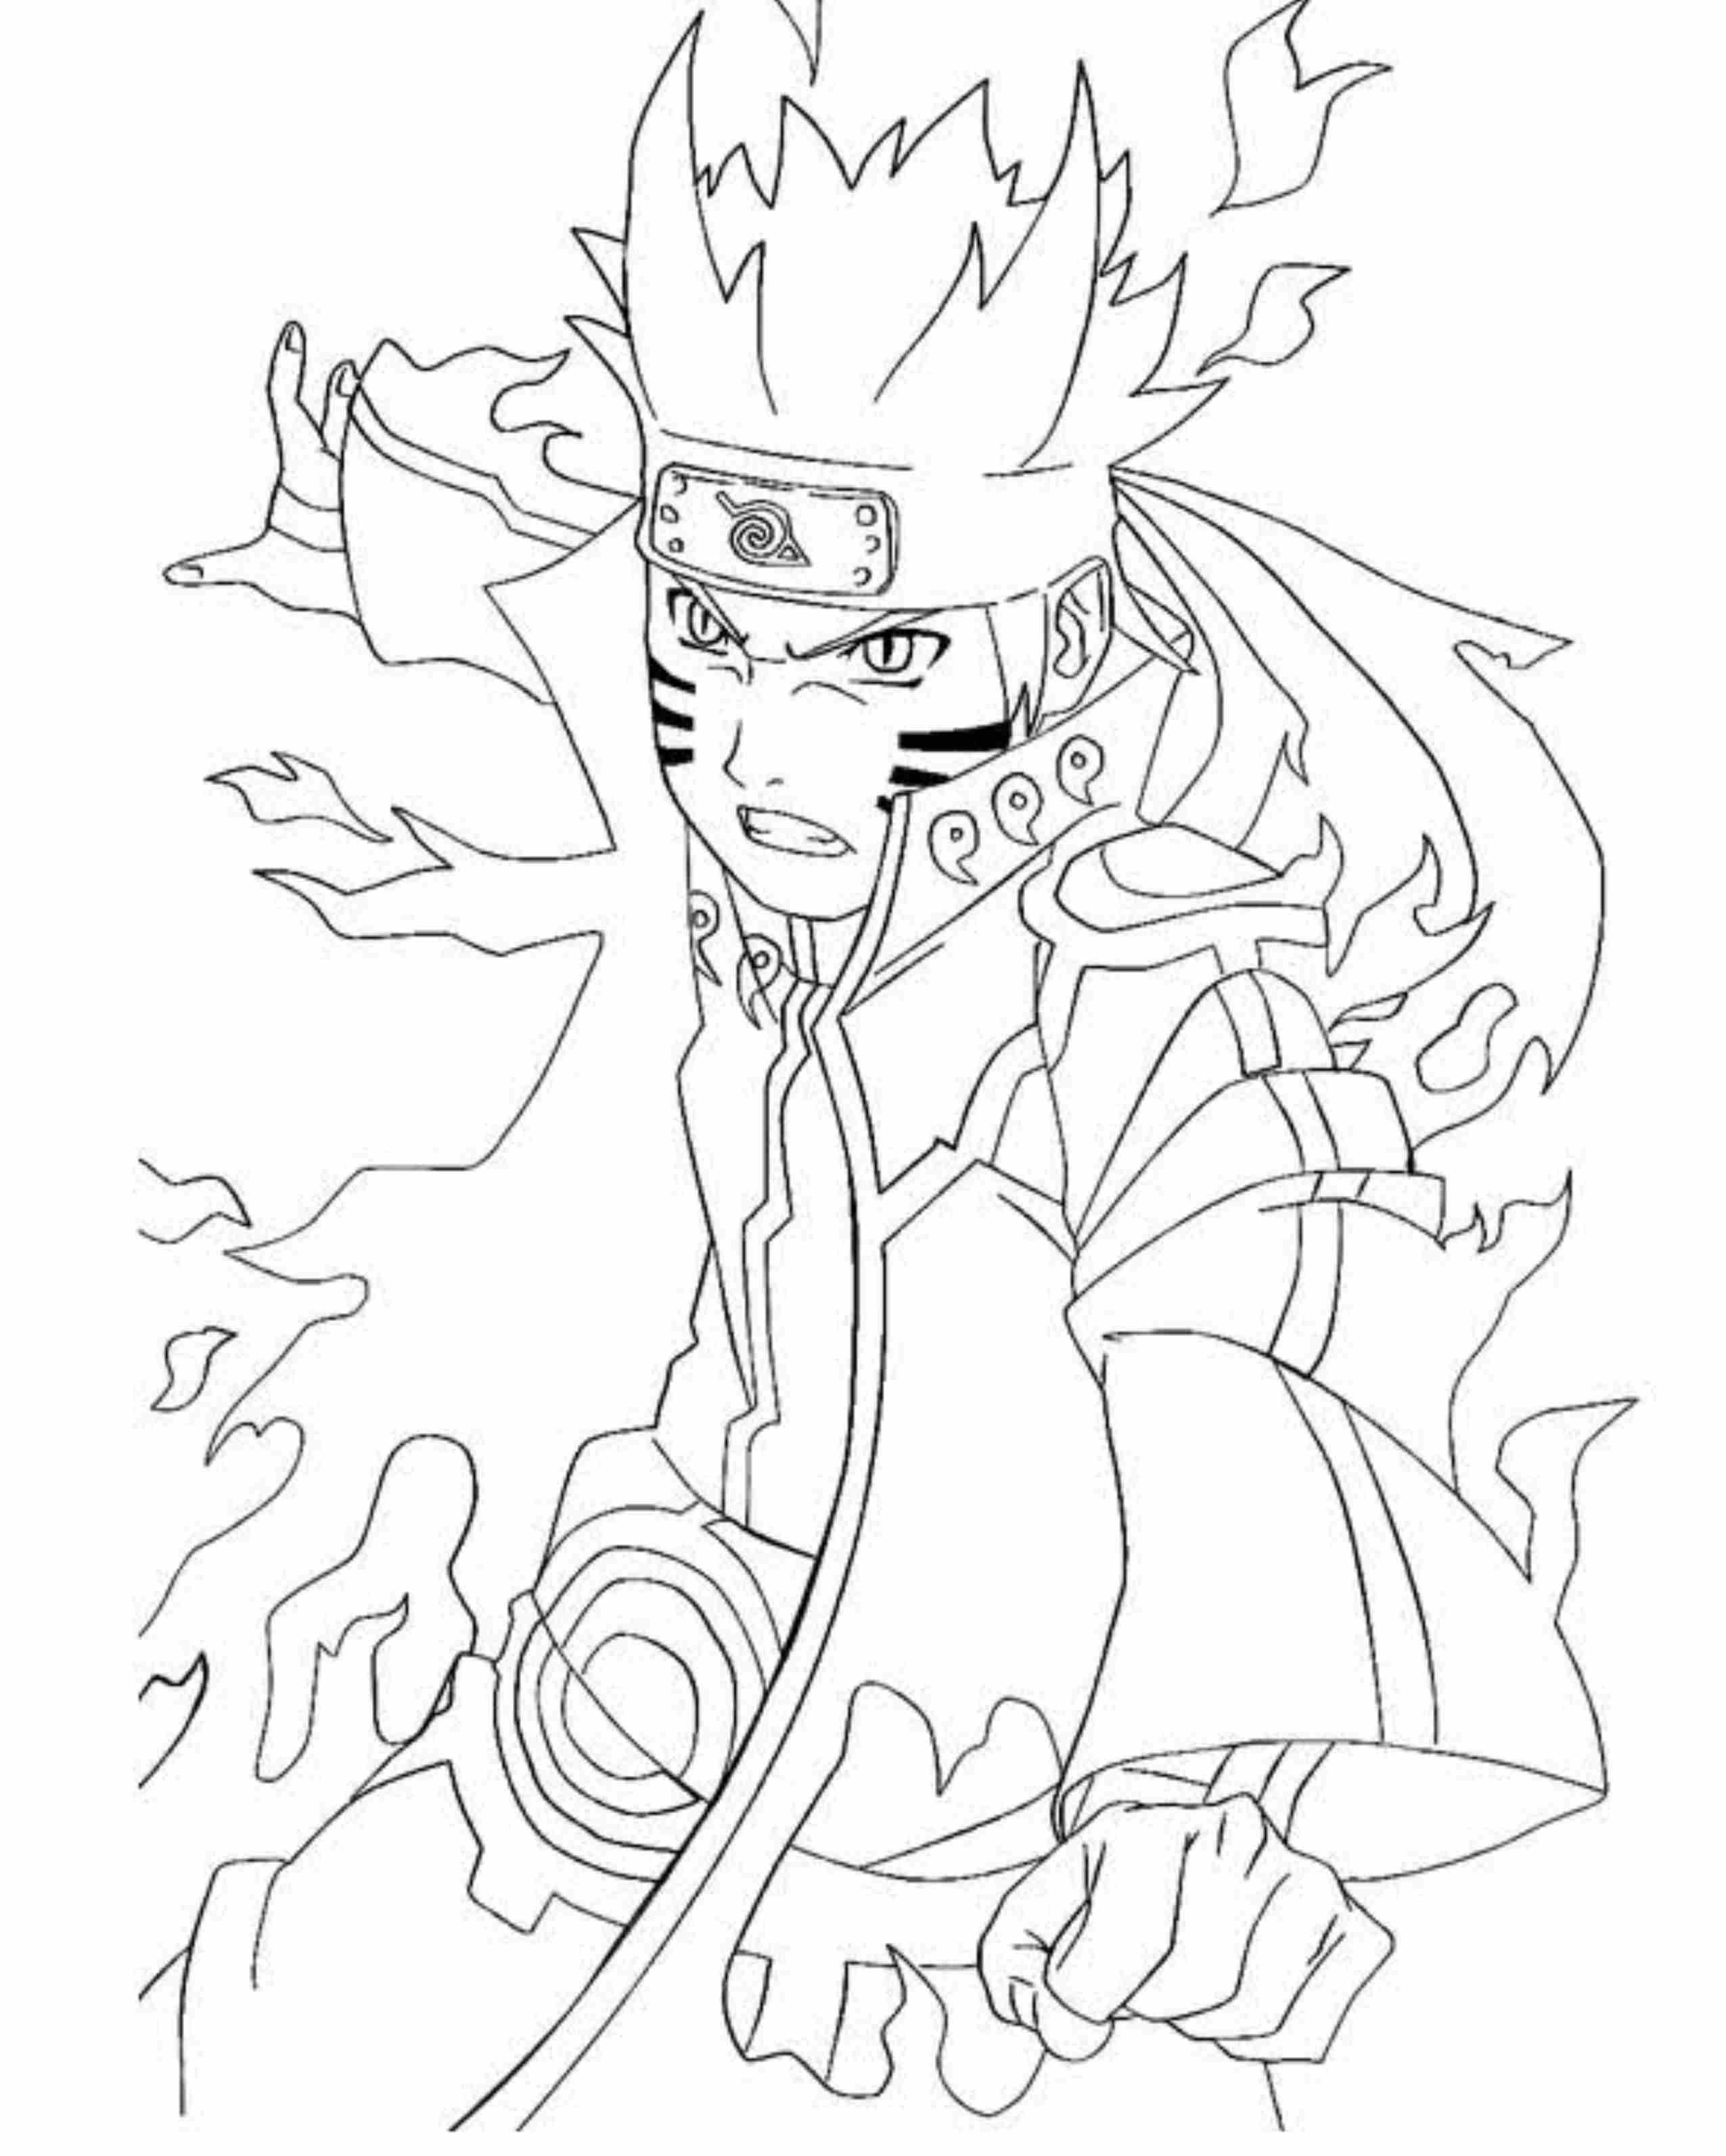 naruto shippuden coloring book printable naruto coloring pages to get your kids occupied book coloring shippuden naruto